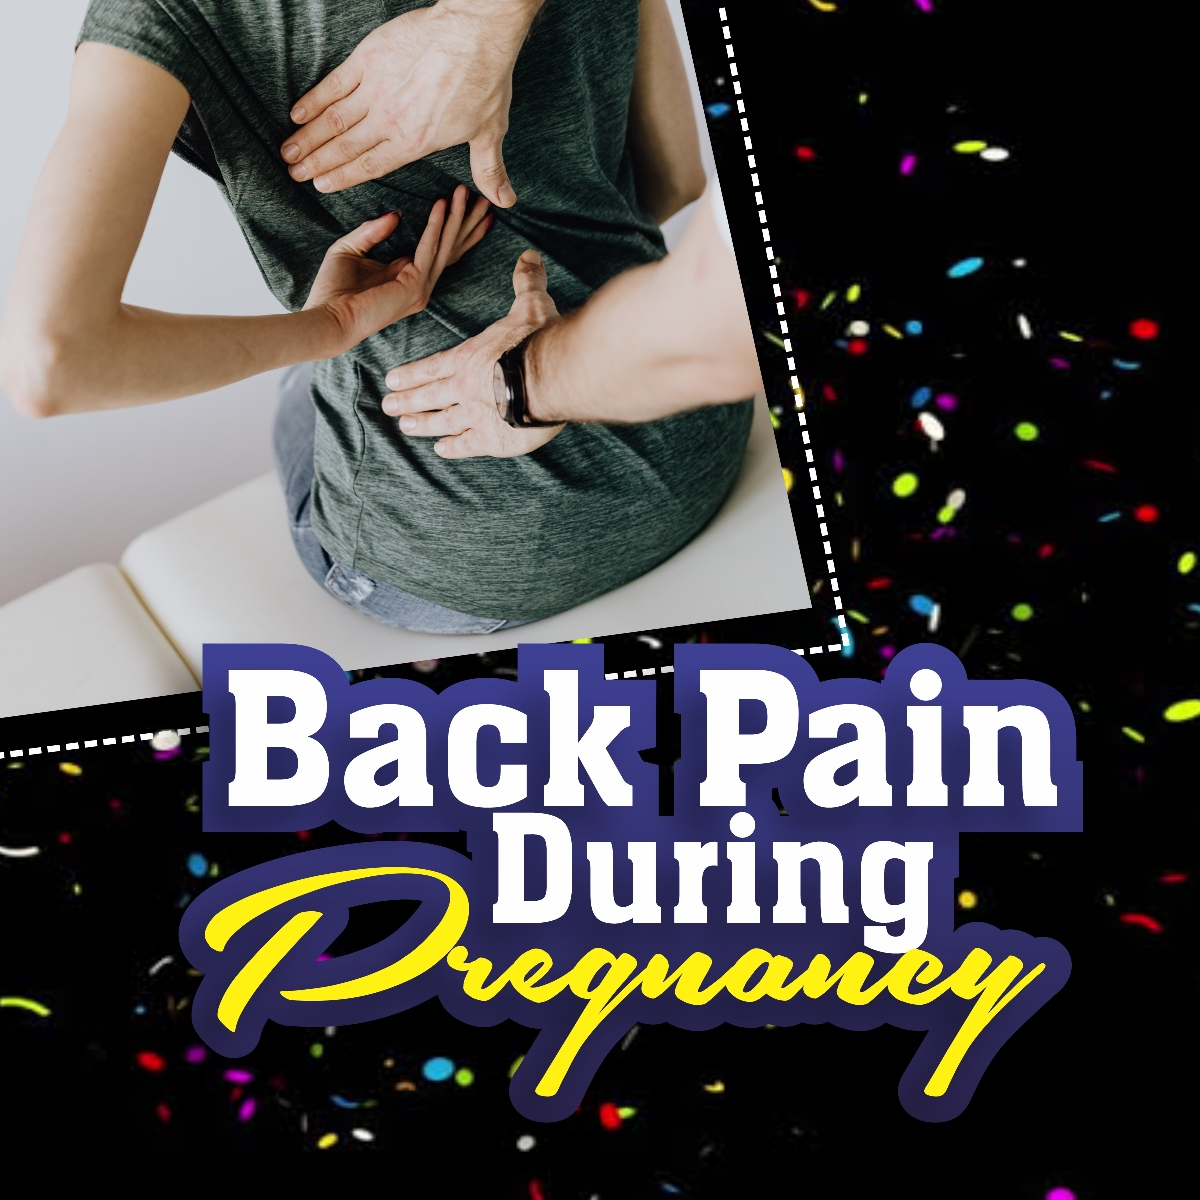 back pain during pregnancy 1